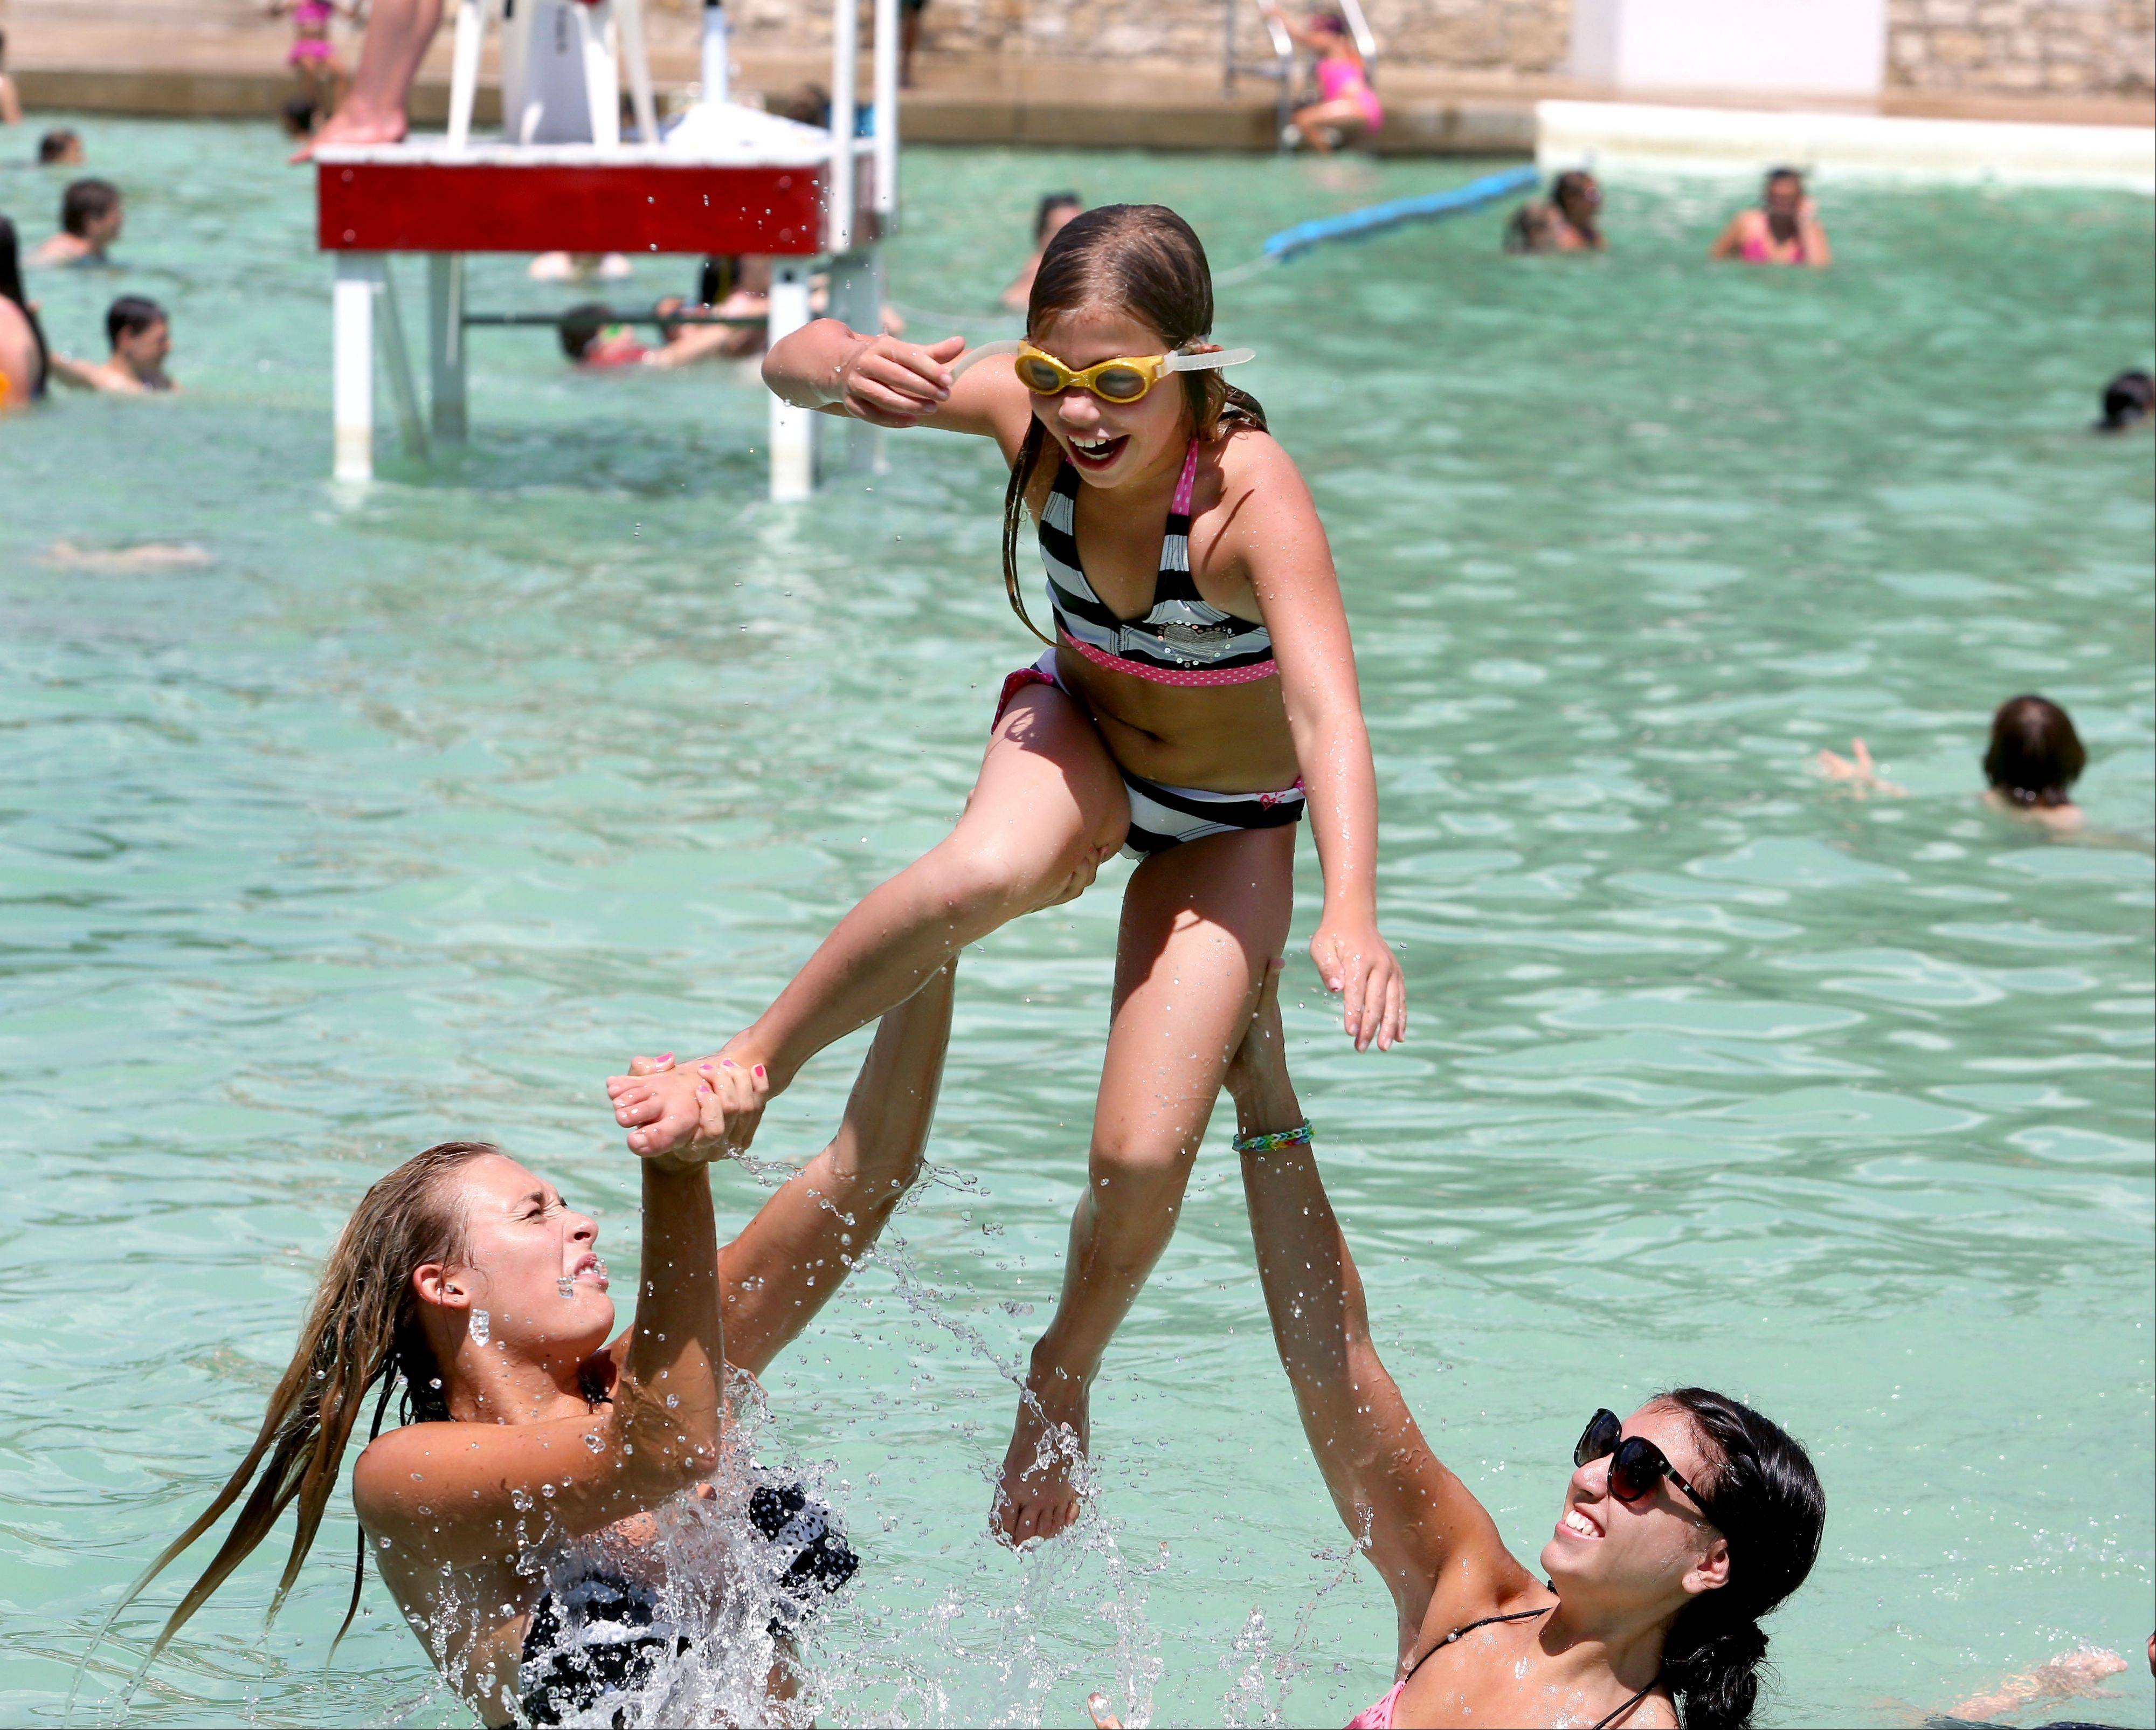 Taylor Urbanski, left, and Jackie Rubik, right, of Downers Grove give Chloe Casamassimo, 7, of Naperville a lift in the air during an outing at Centennial Beach on Thursday in Naperville.